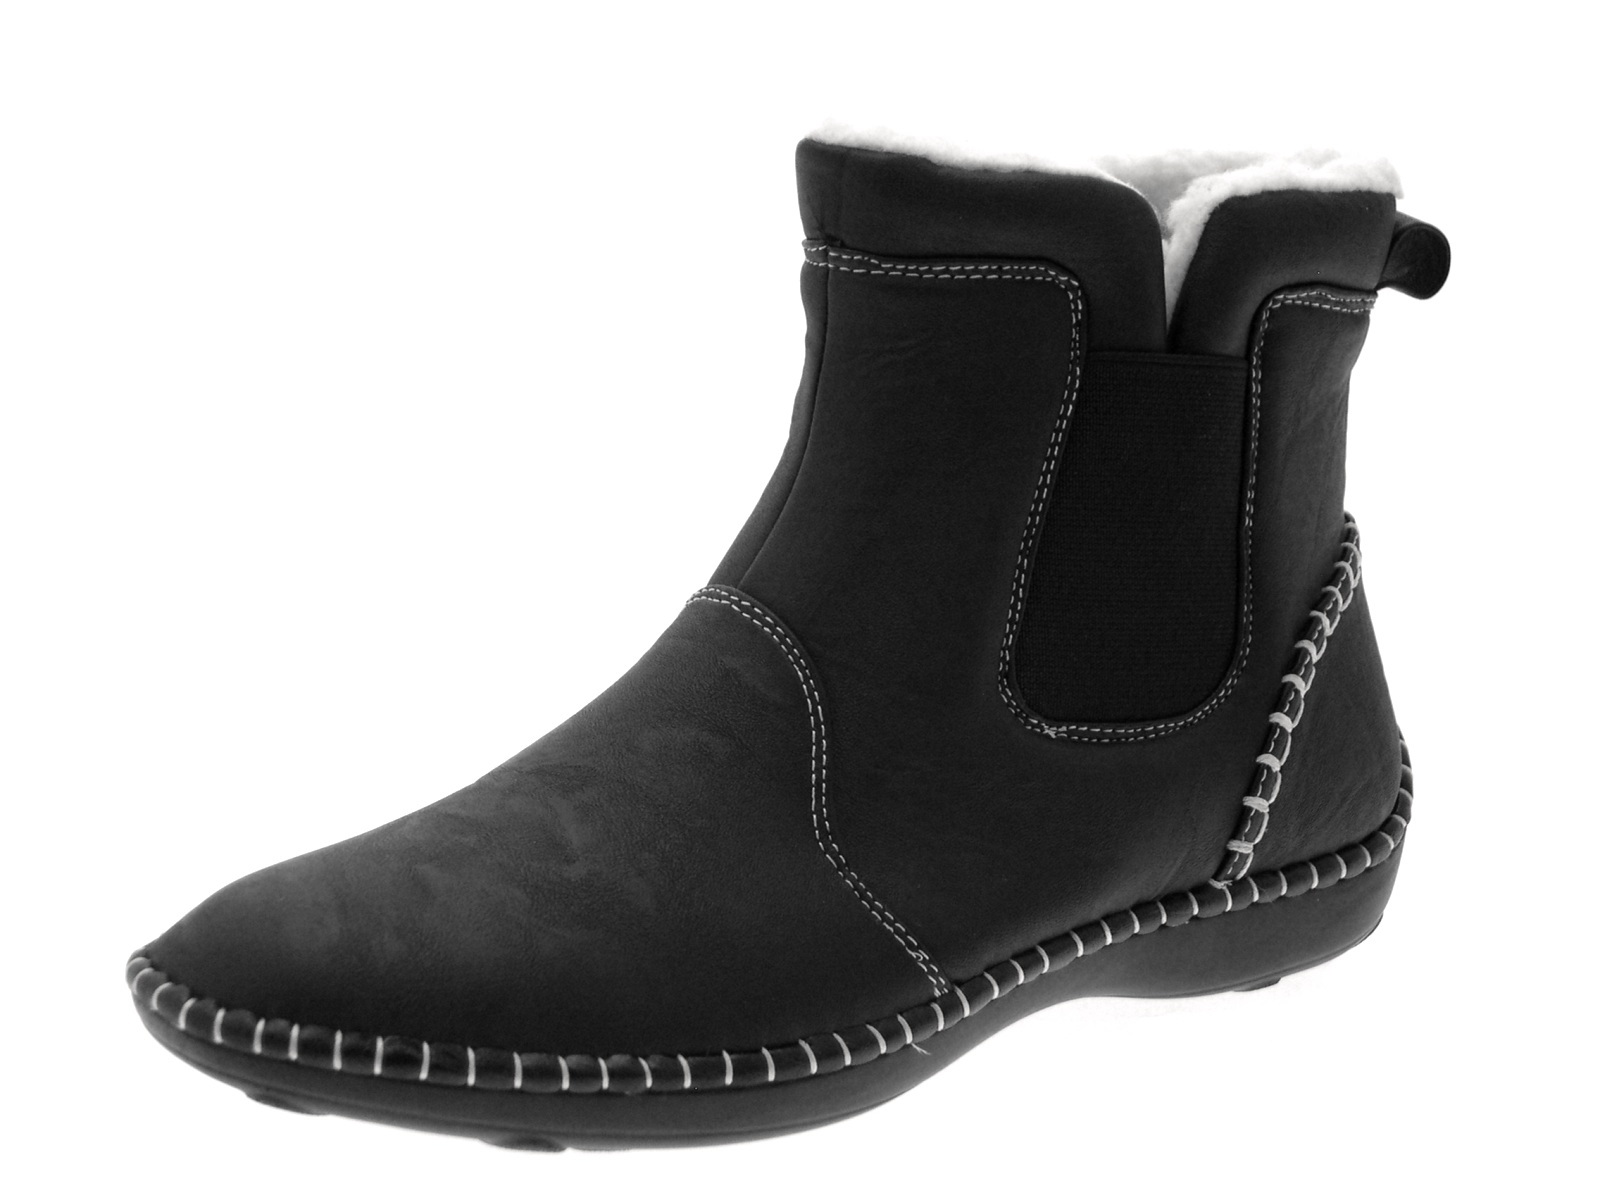 Ankle Boots Comfortable Flat Women